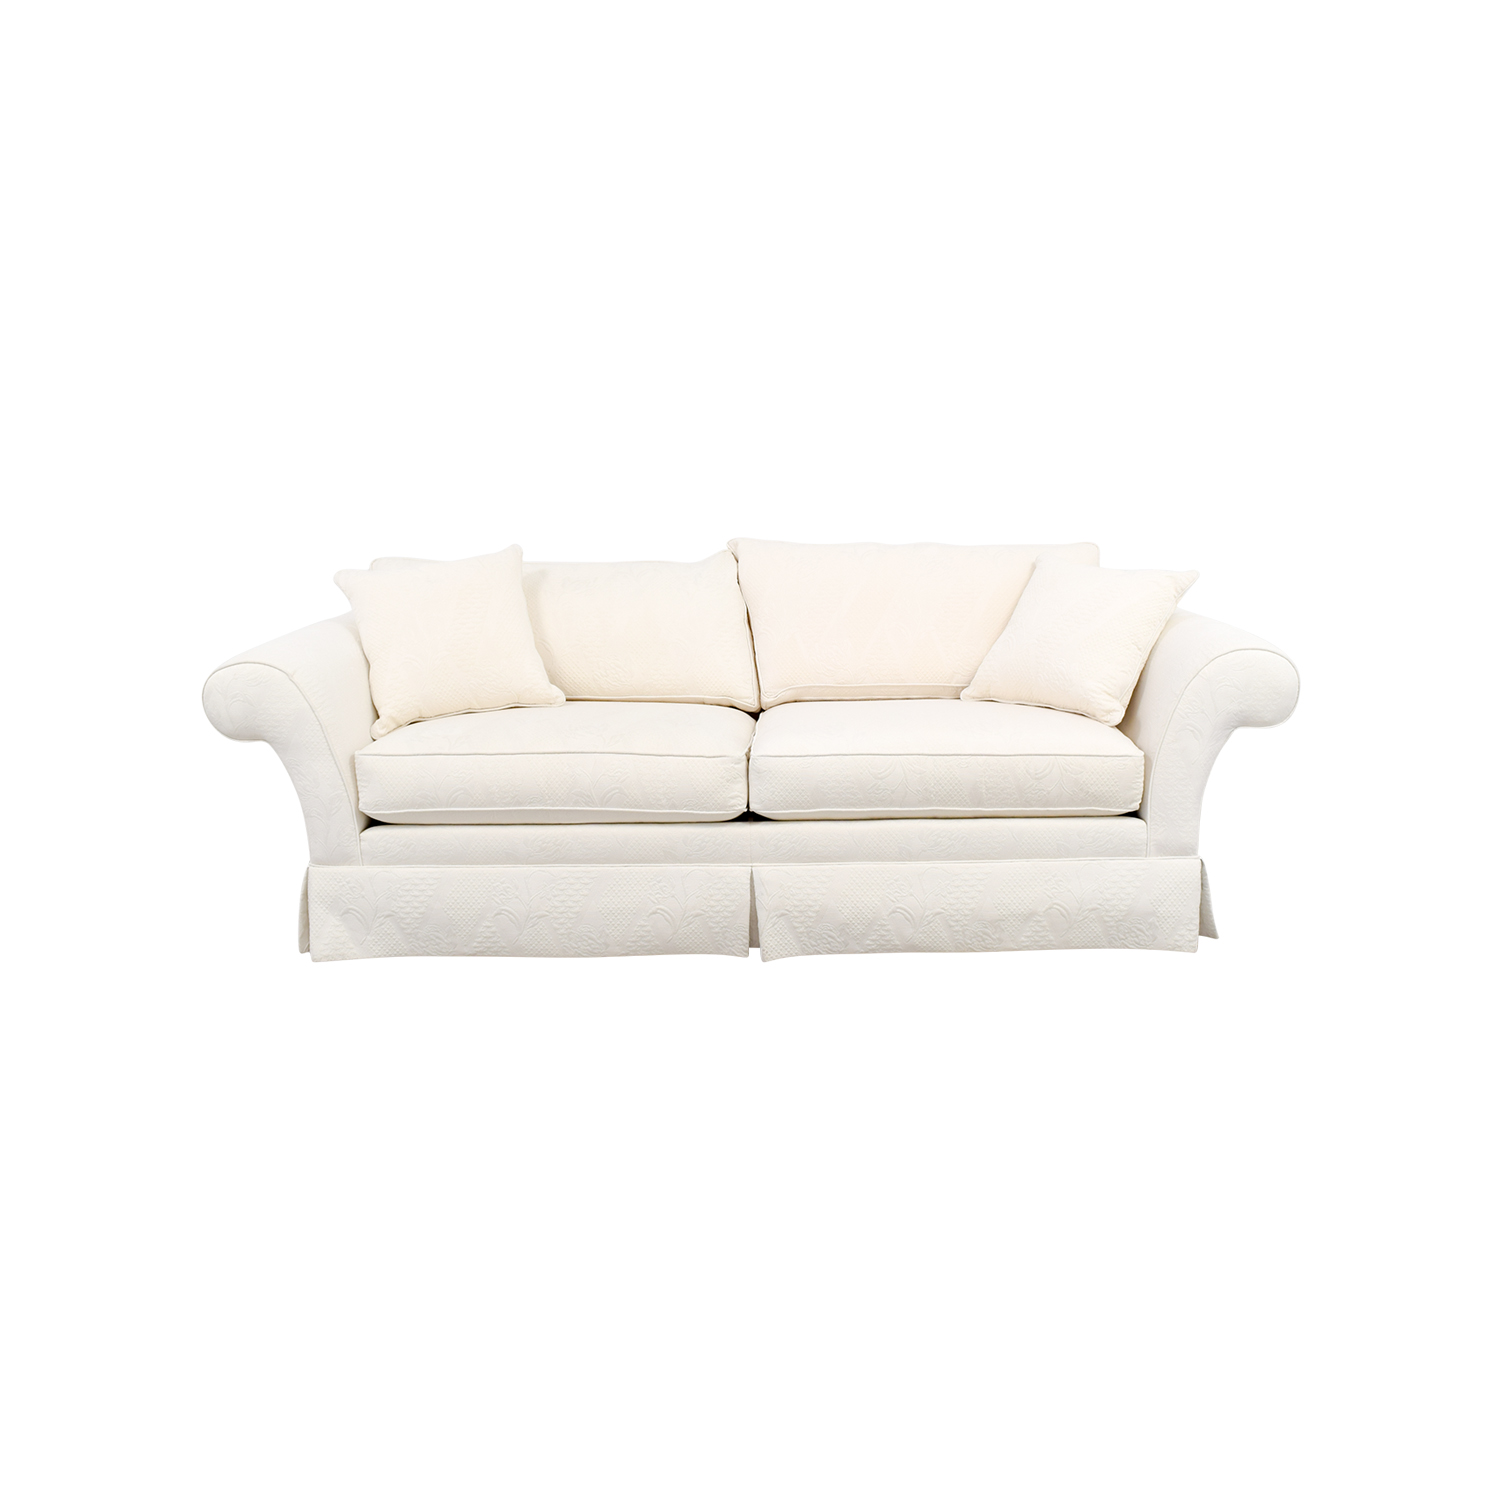 Ethan Allen Ethan Allen Rolled Arm White Sofa nj